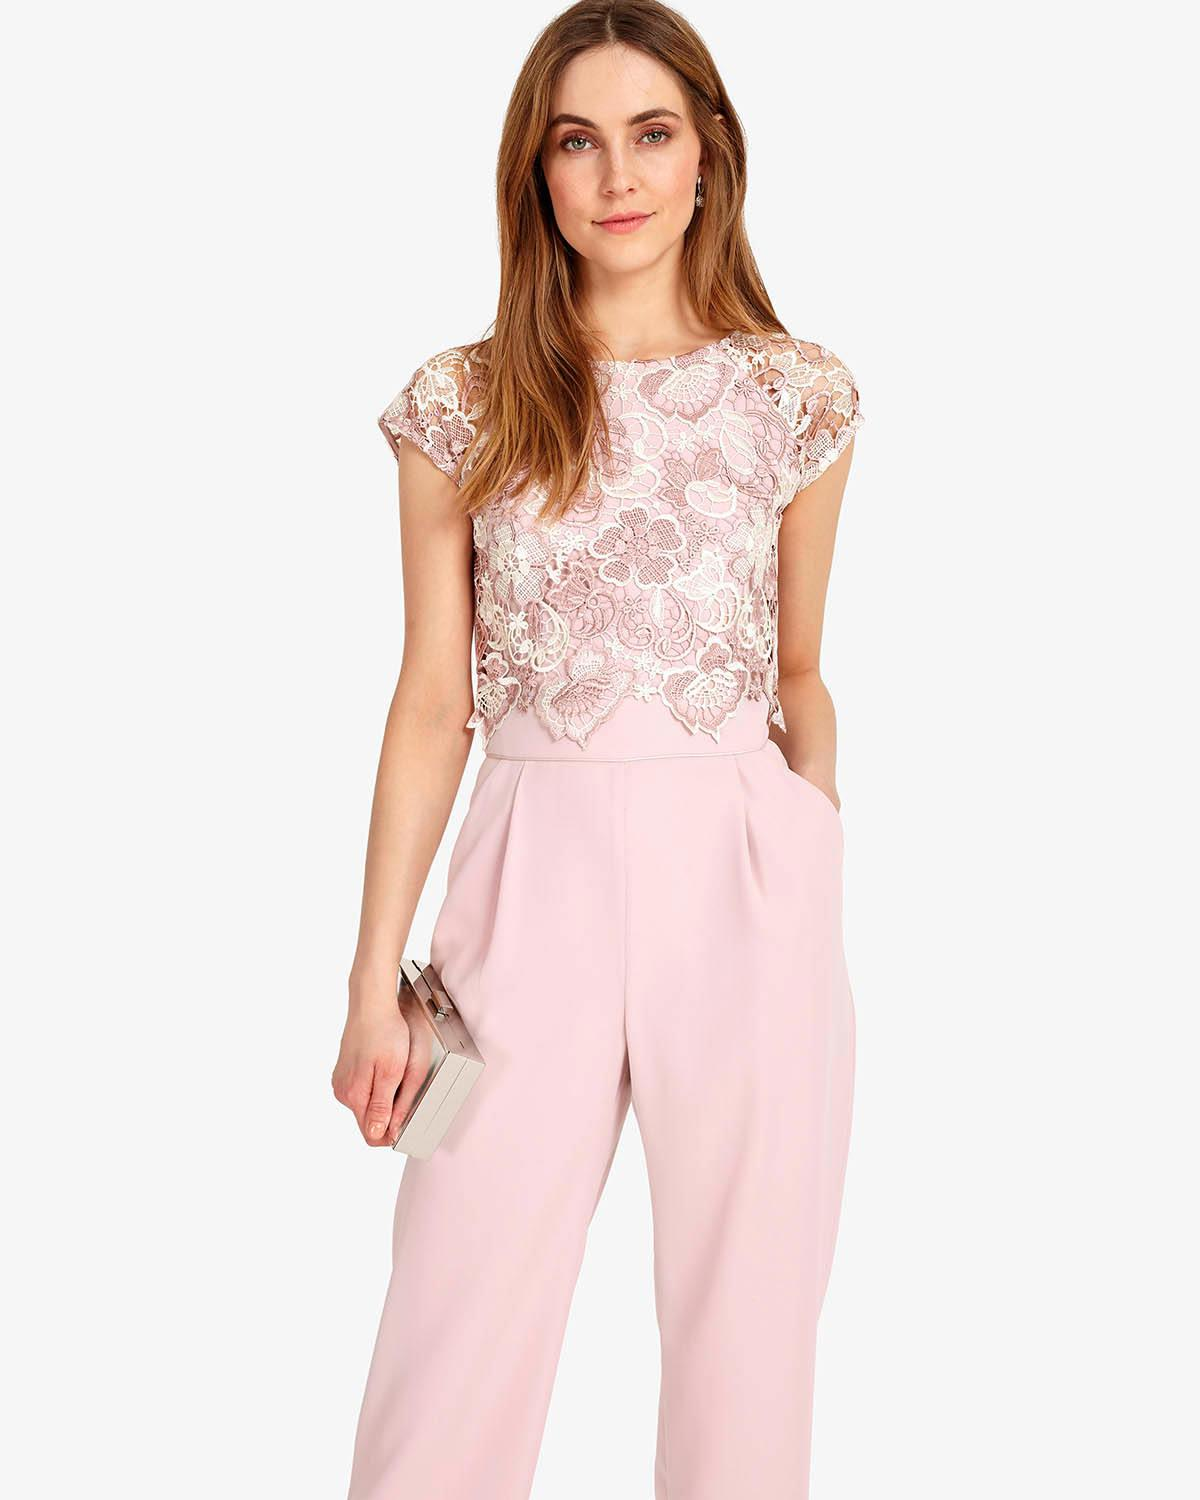 5553d83b42f6 Phase Eight Cortine Lace Jumpsuit - Lyst